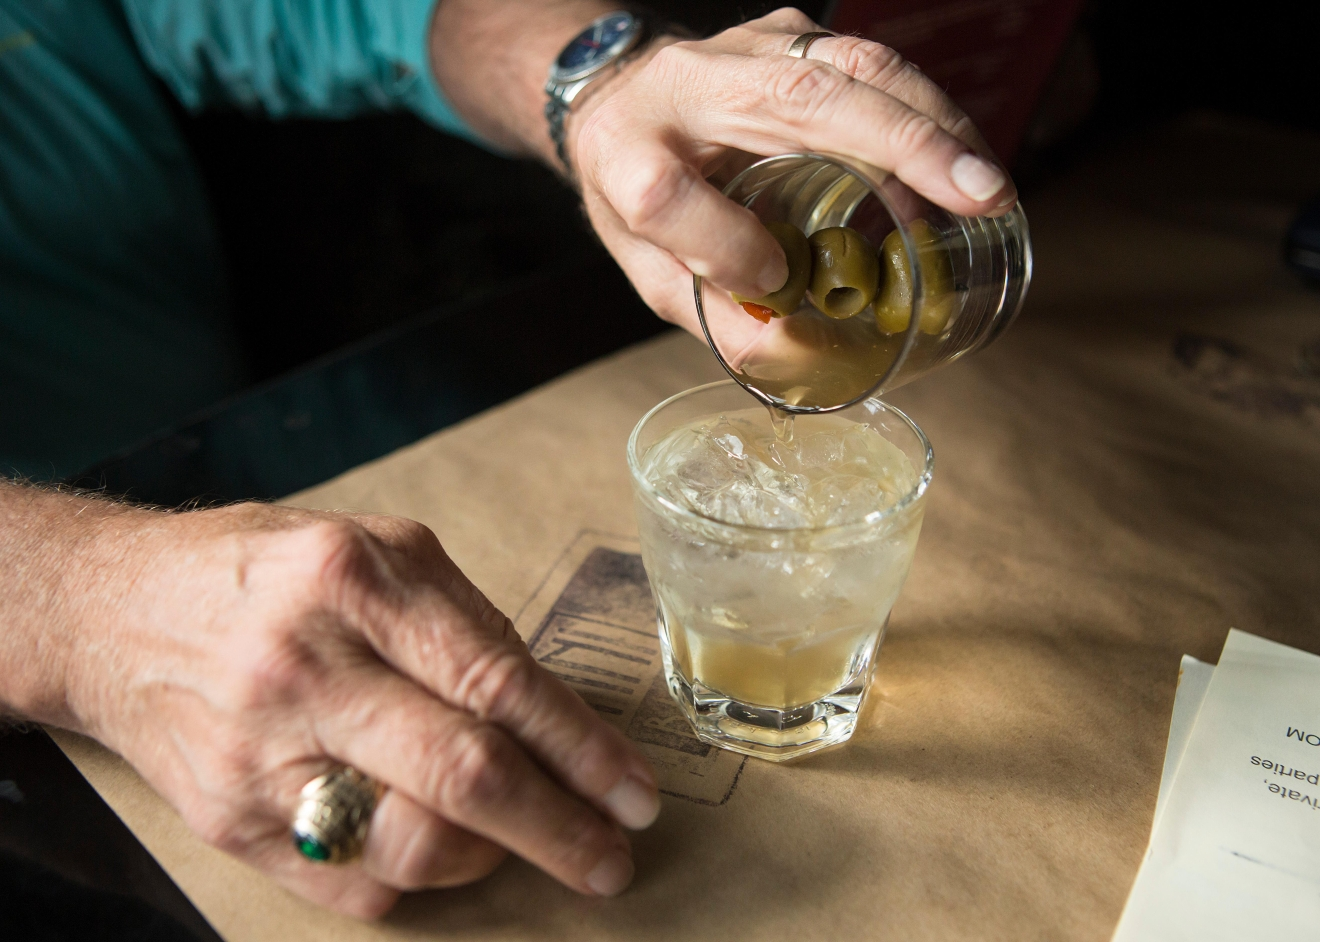 Bob Goodman likes to pour his own martini at Tini Bigs Lounge. The bar has served Seattle for over 20 years. (Sy Bean / Seattle Refined)